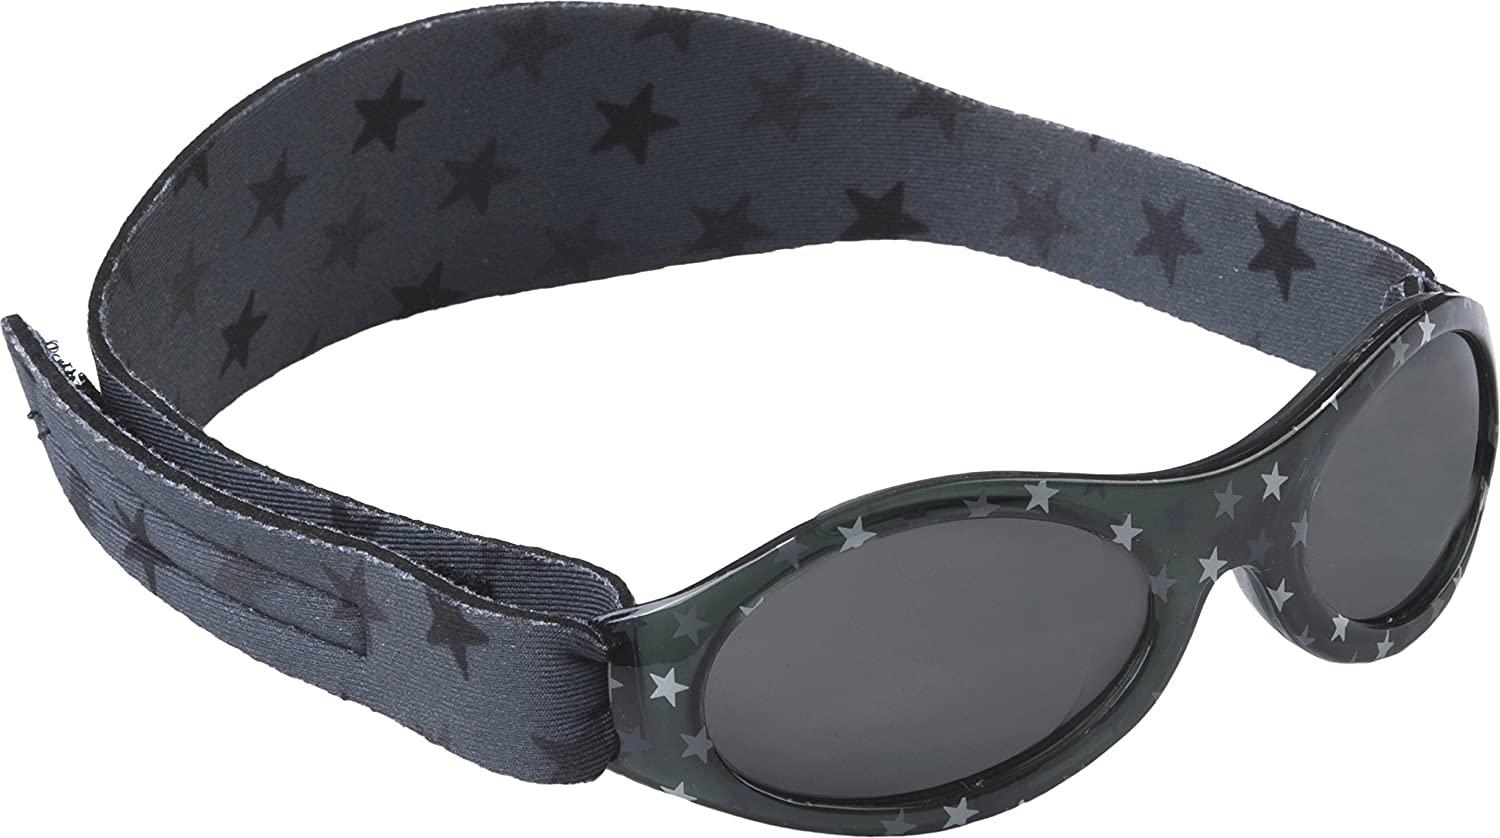 Grey Star BabyBanz sunglasses by Dooky 0 - 2 years 110607